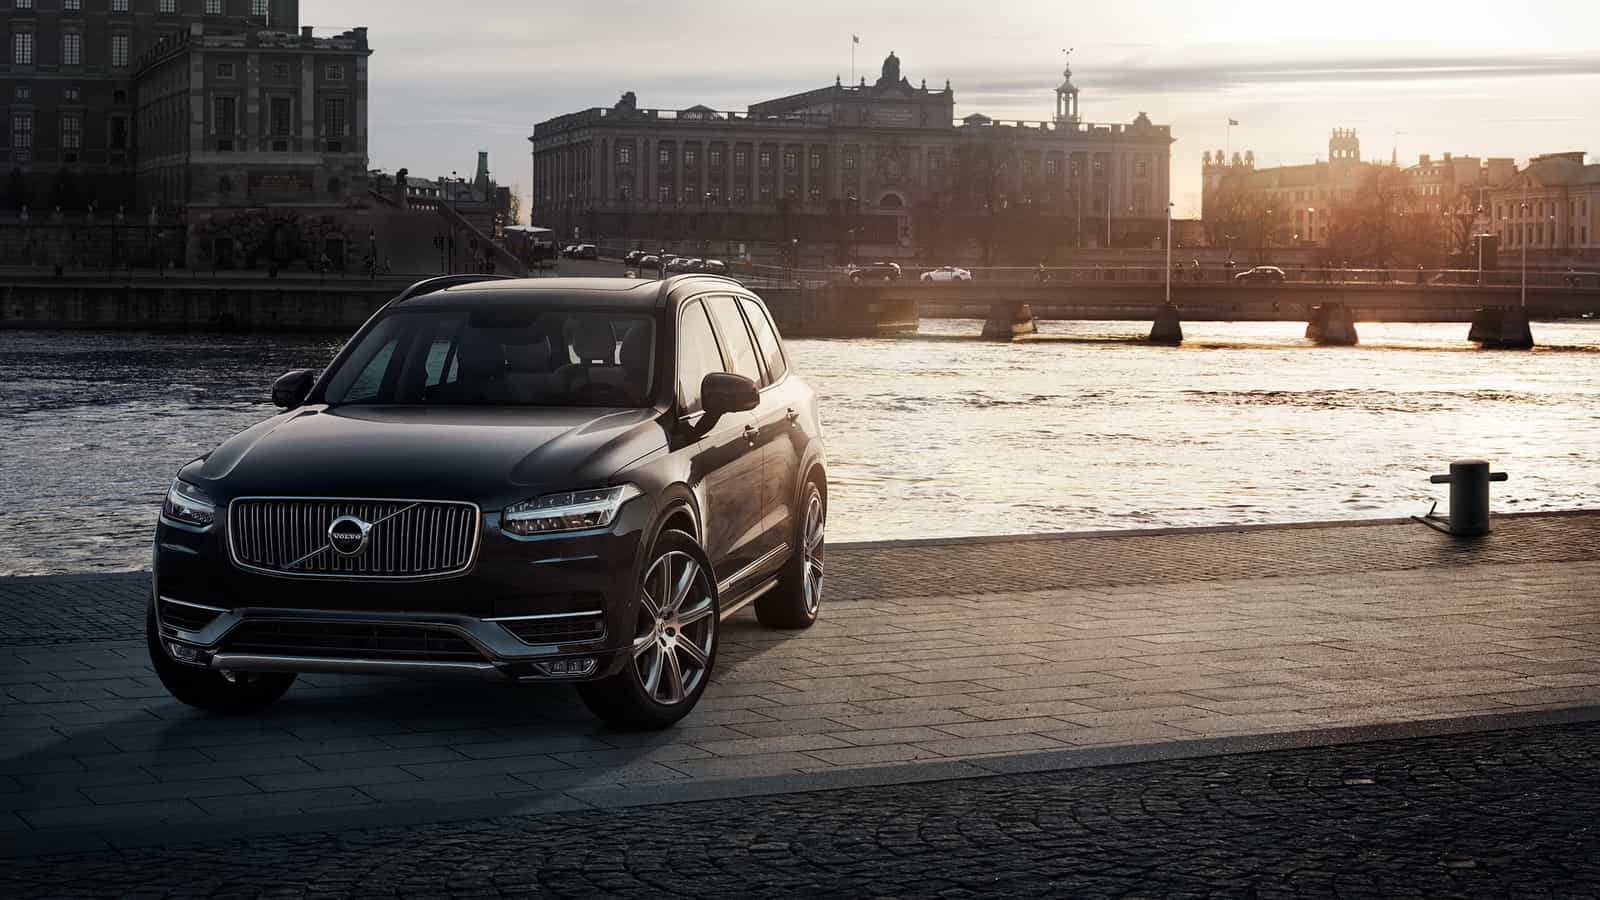 Towcar of The Year Volvo XC90